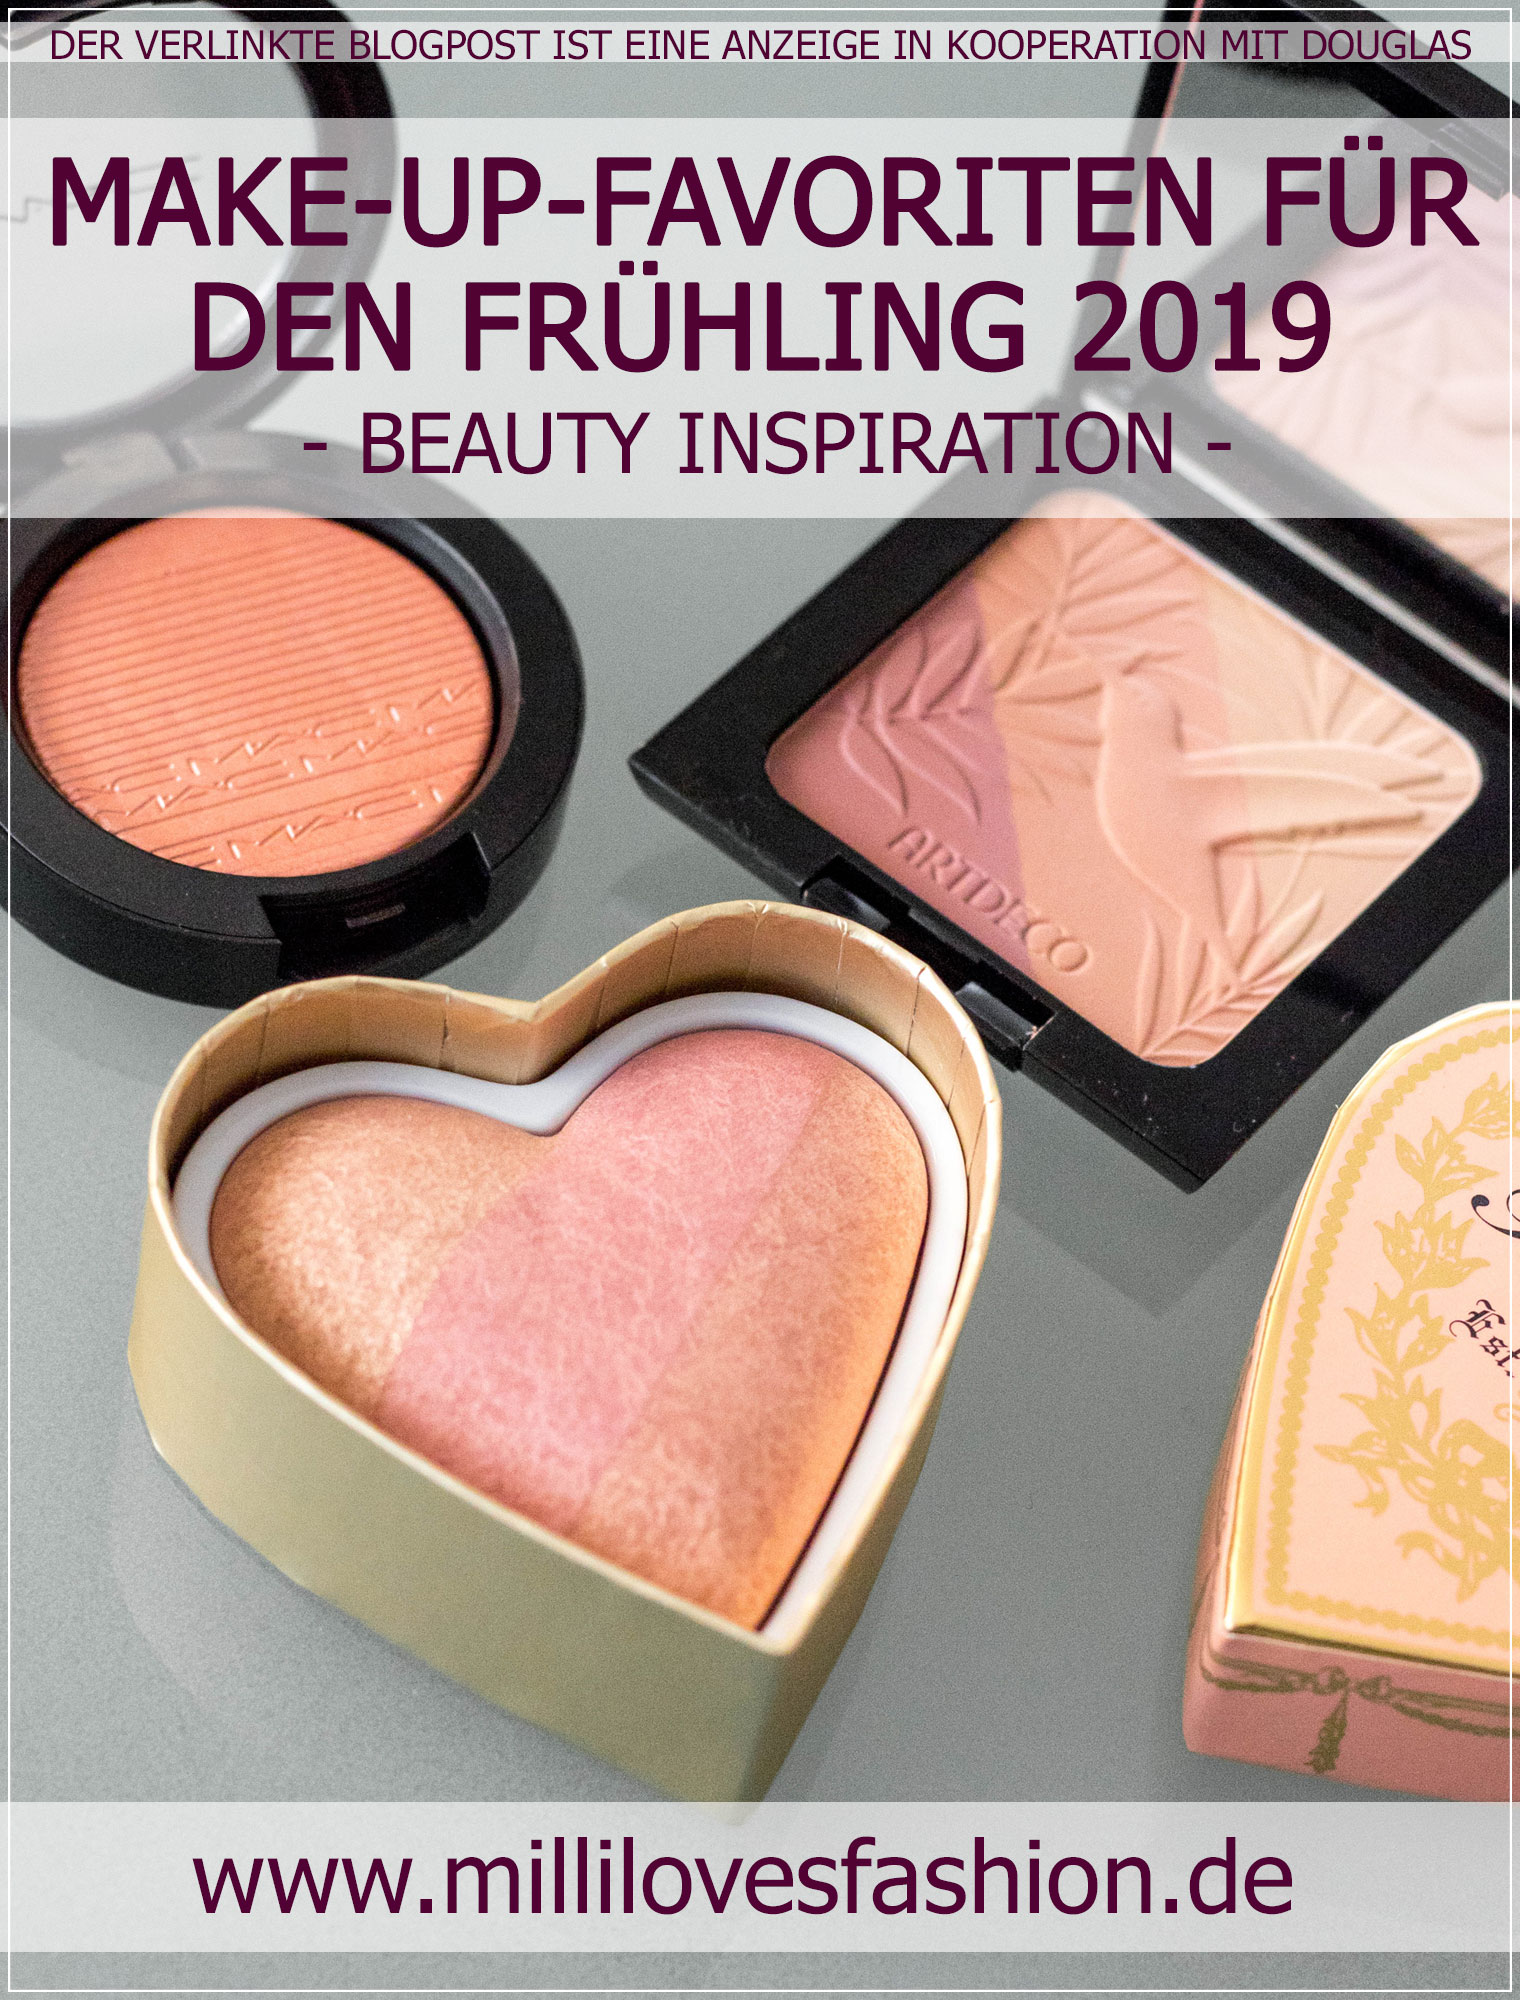 Douglas, Make-Up-Favoriten, Fruehlings-Make-Up, Spring-Make-Up, Make-Up-Tipps, Beautyblogger, Beautyblog, Ruhrgebiet, Bloggerin